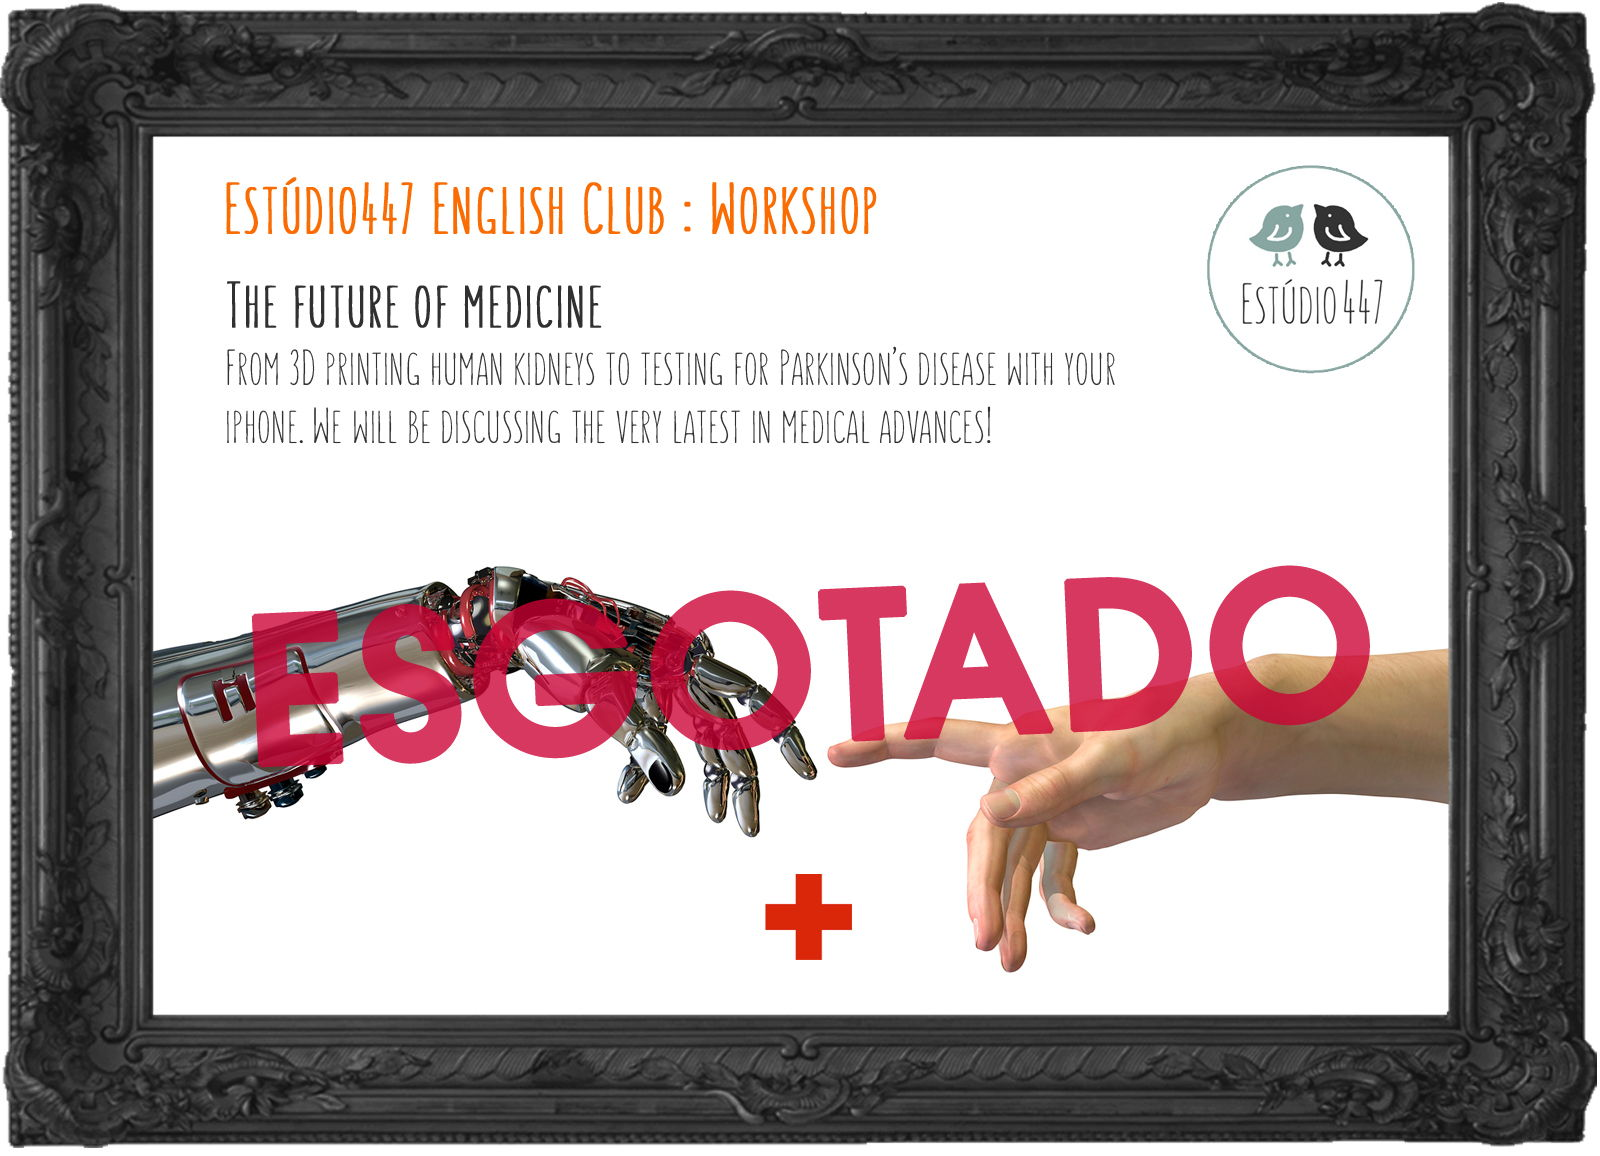 6 week course workshop poster - esgotado.jpg